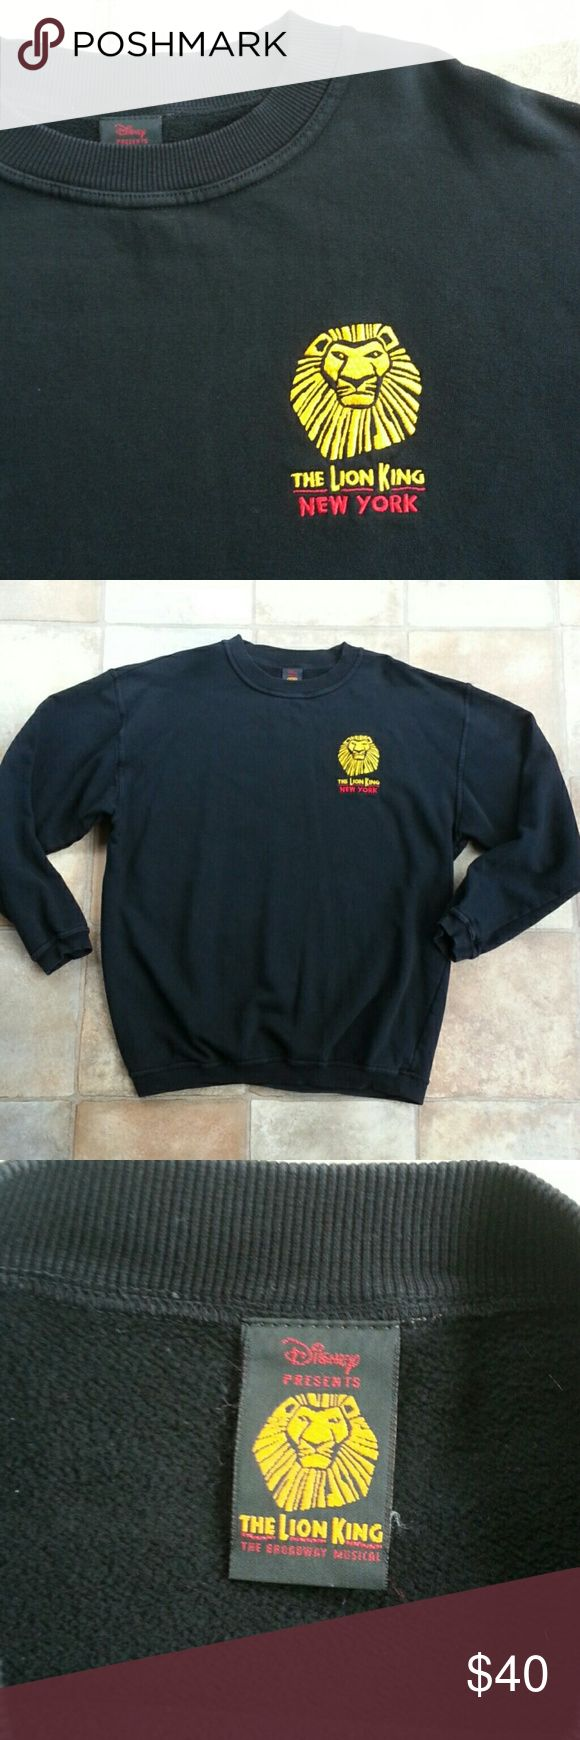 THE LION KING Broadway Sweatshirt Great condition but keep a lint brush on hand! Mens size but would be fine for a woman as well! Made in the USA! Bundle and save 15% Thanks for looking! Disney Shirts Sweatshirts & Hoodies